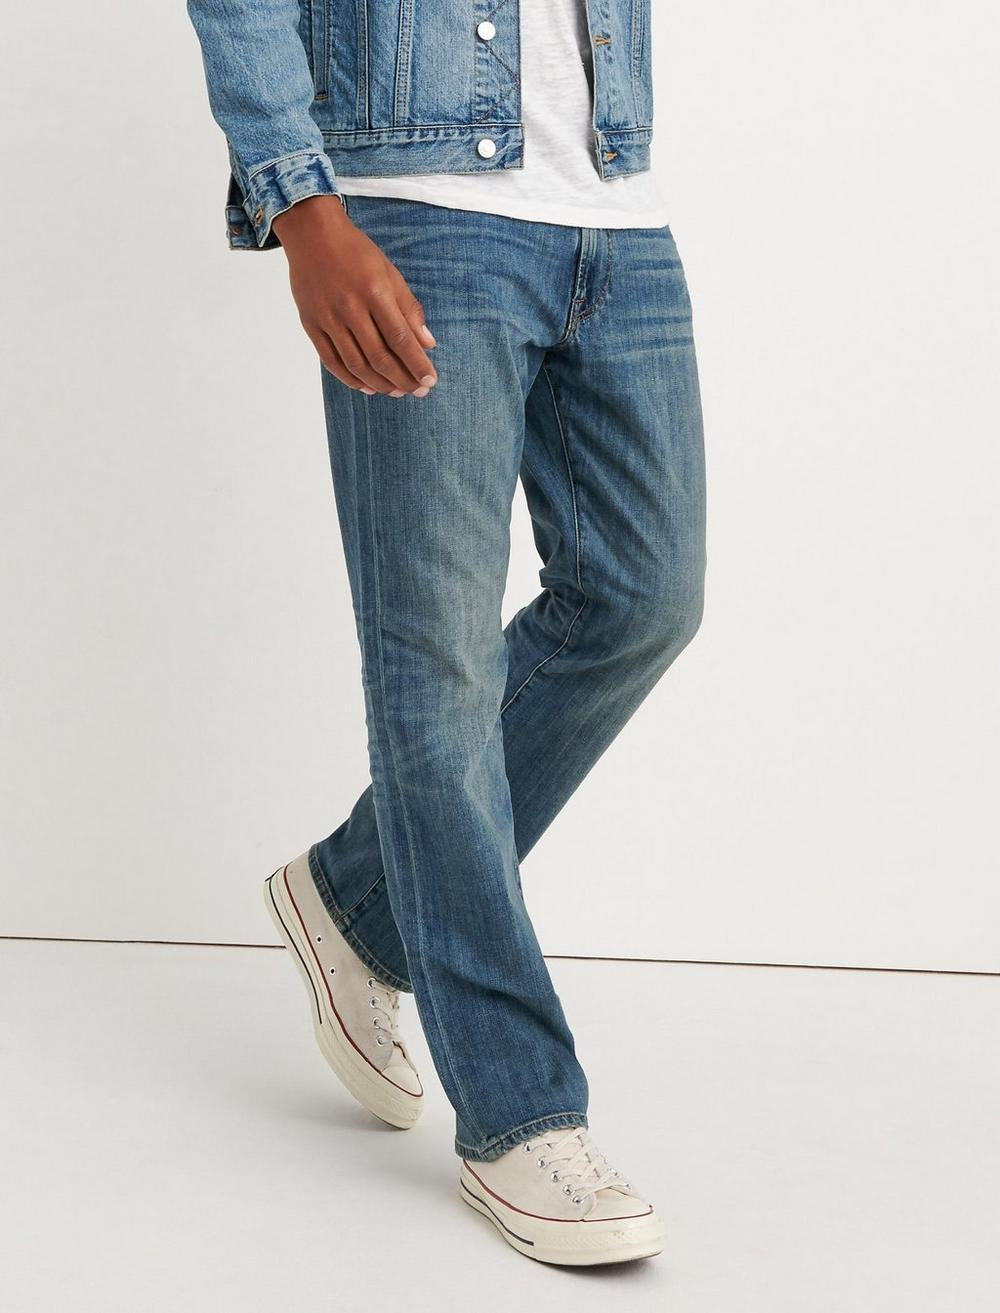 181 RELAXED STRAIGHT JEAN, image 1